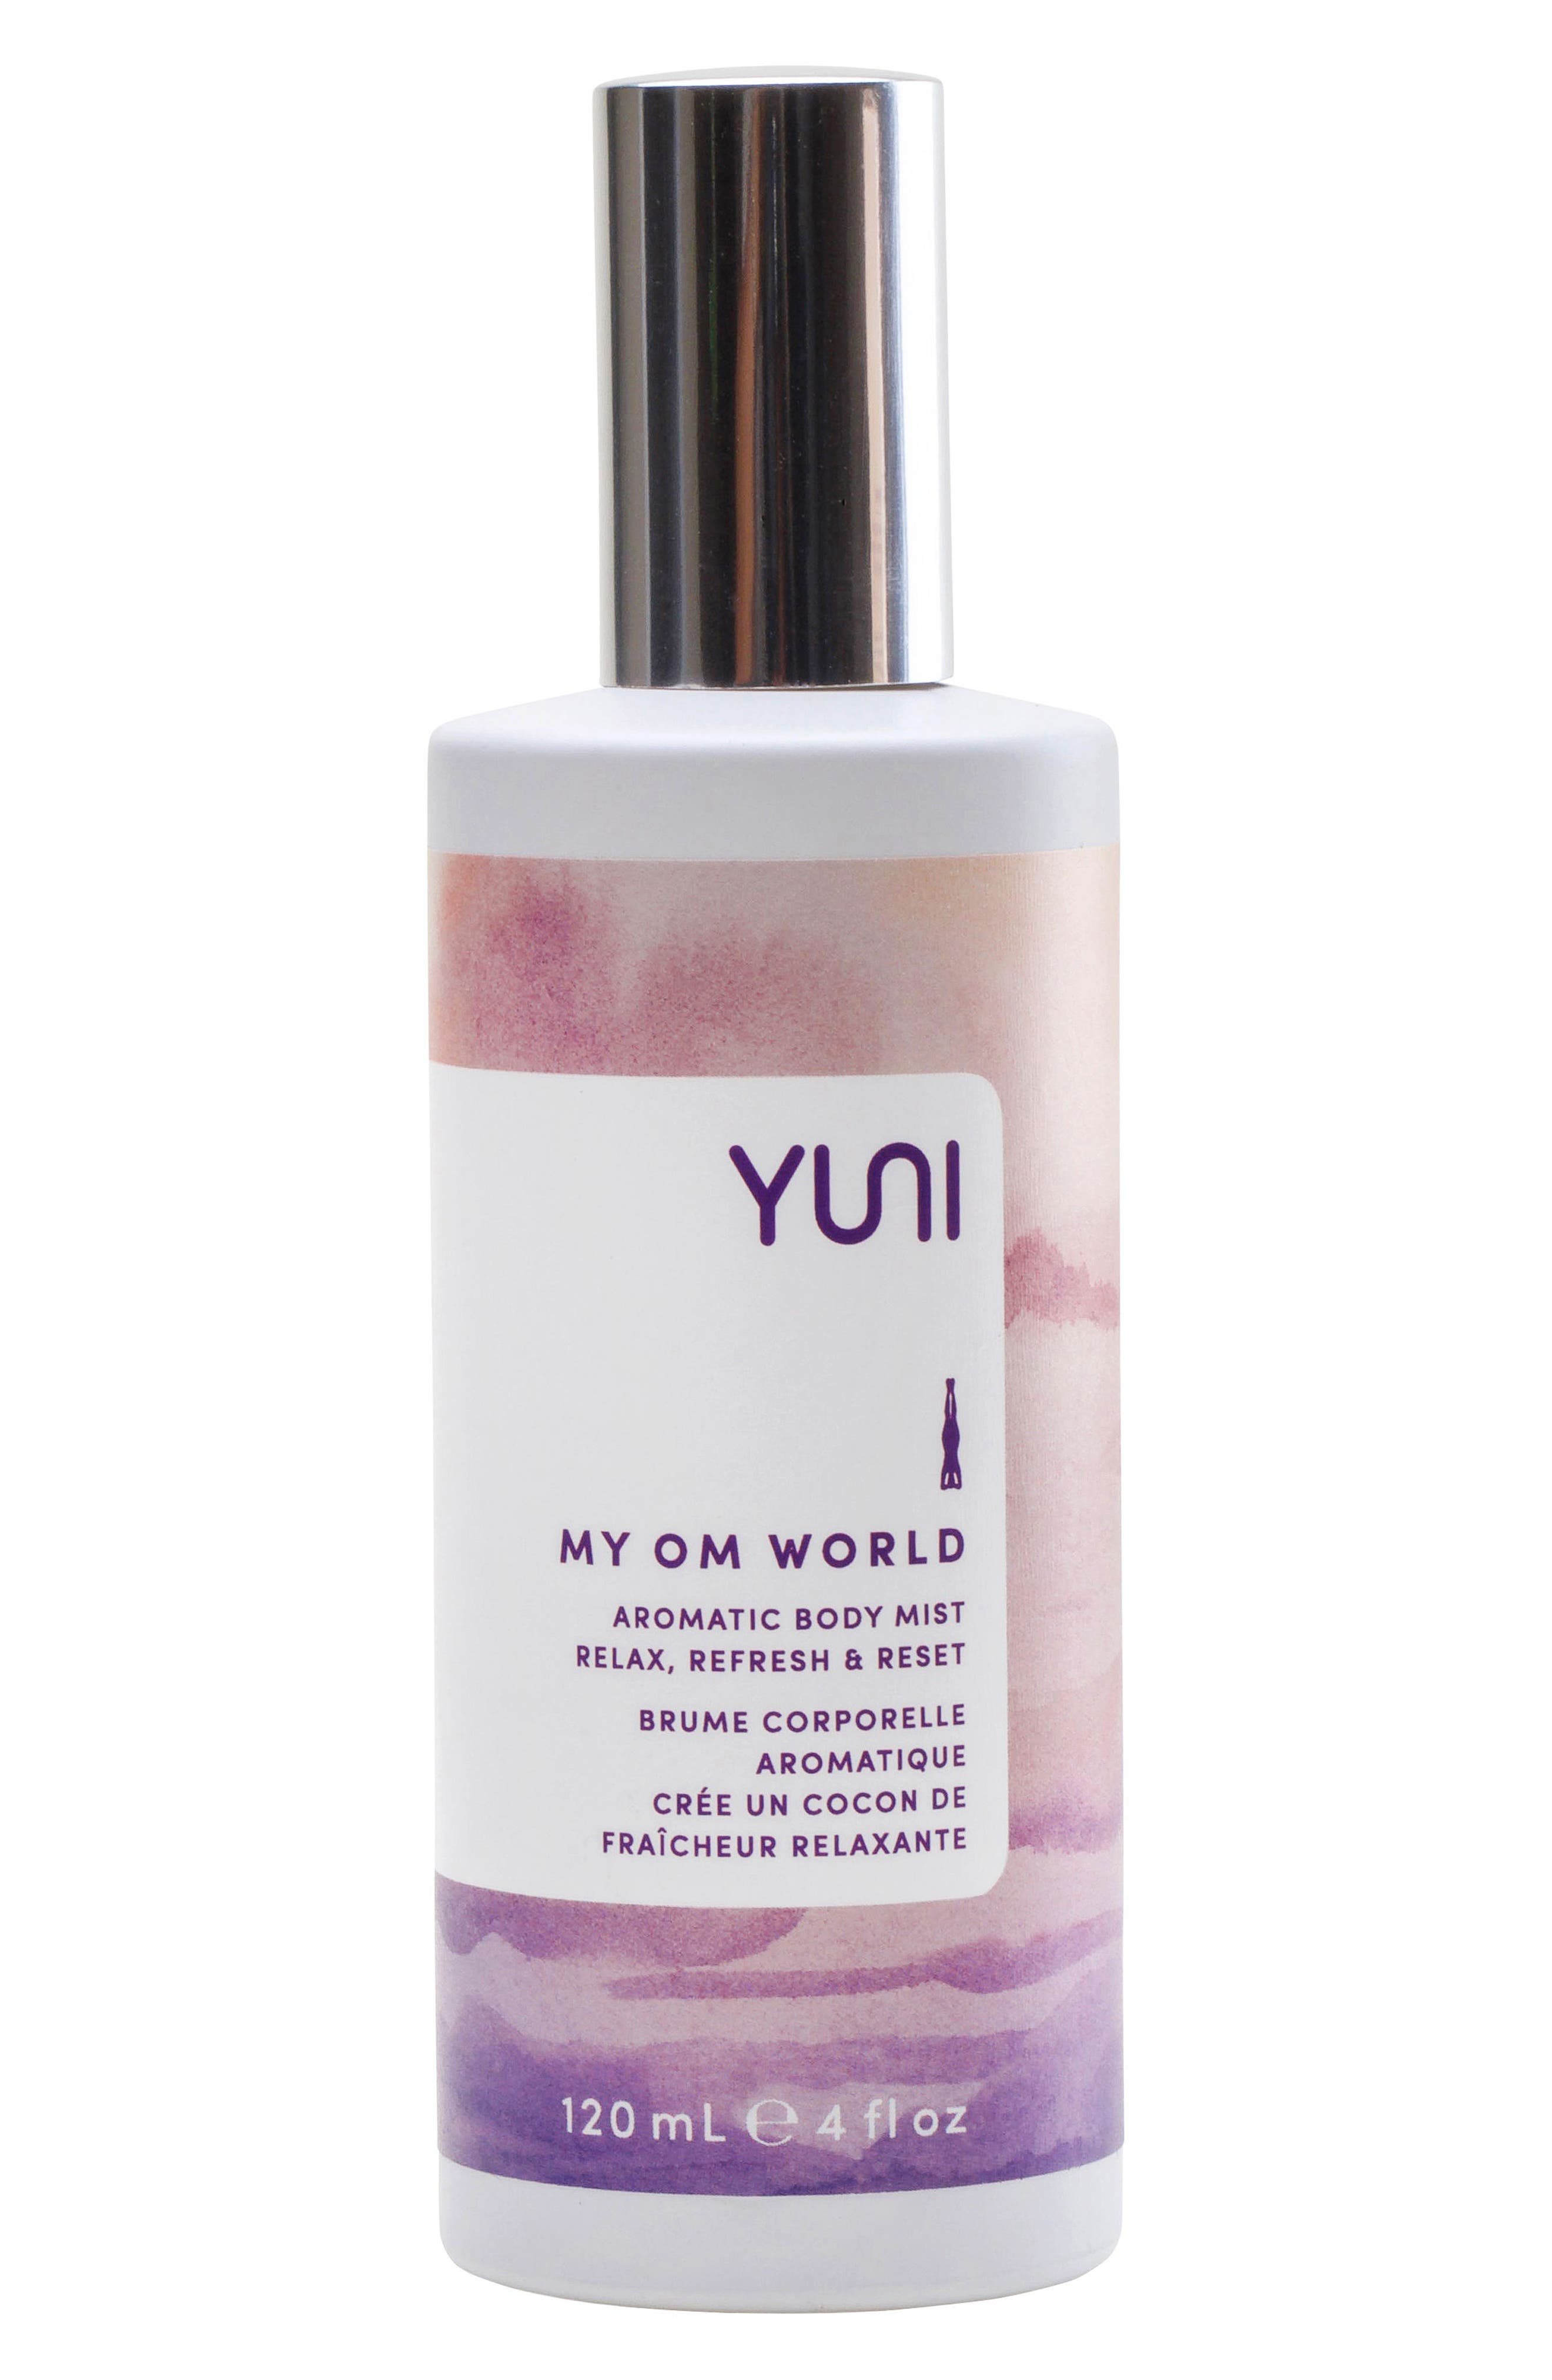 My Om World Aromatic Body Mist,                             Main thumbnail 1, color,                             No Color